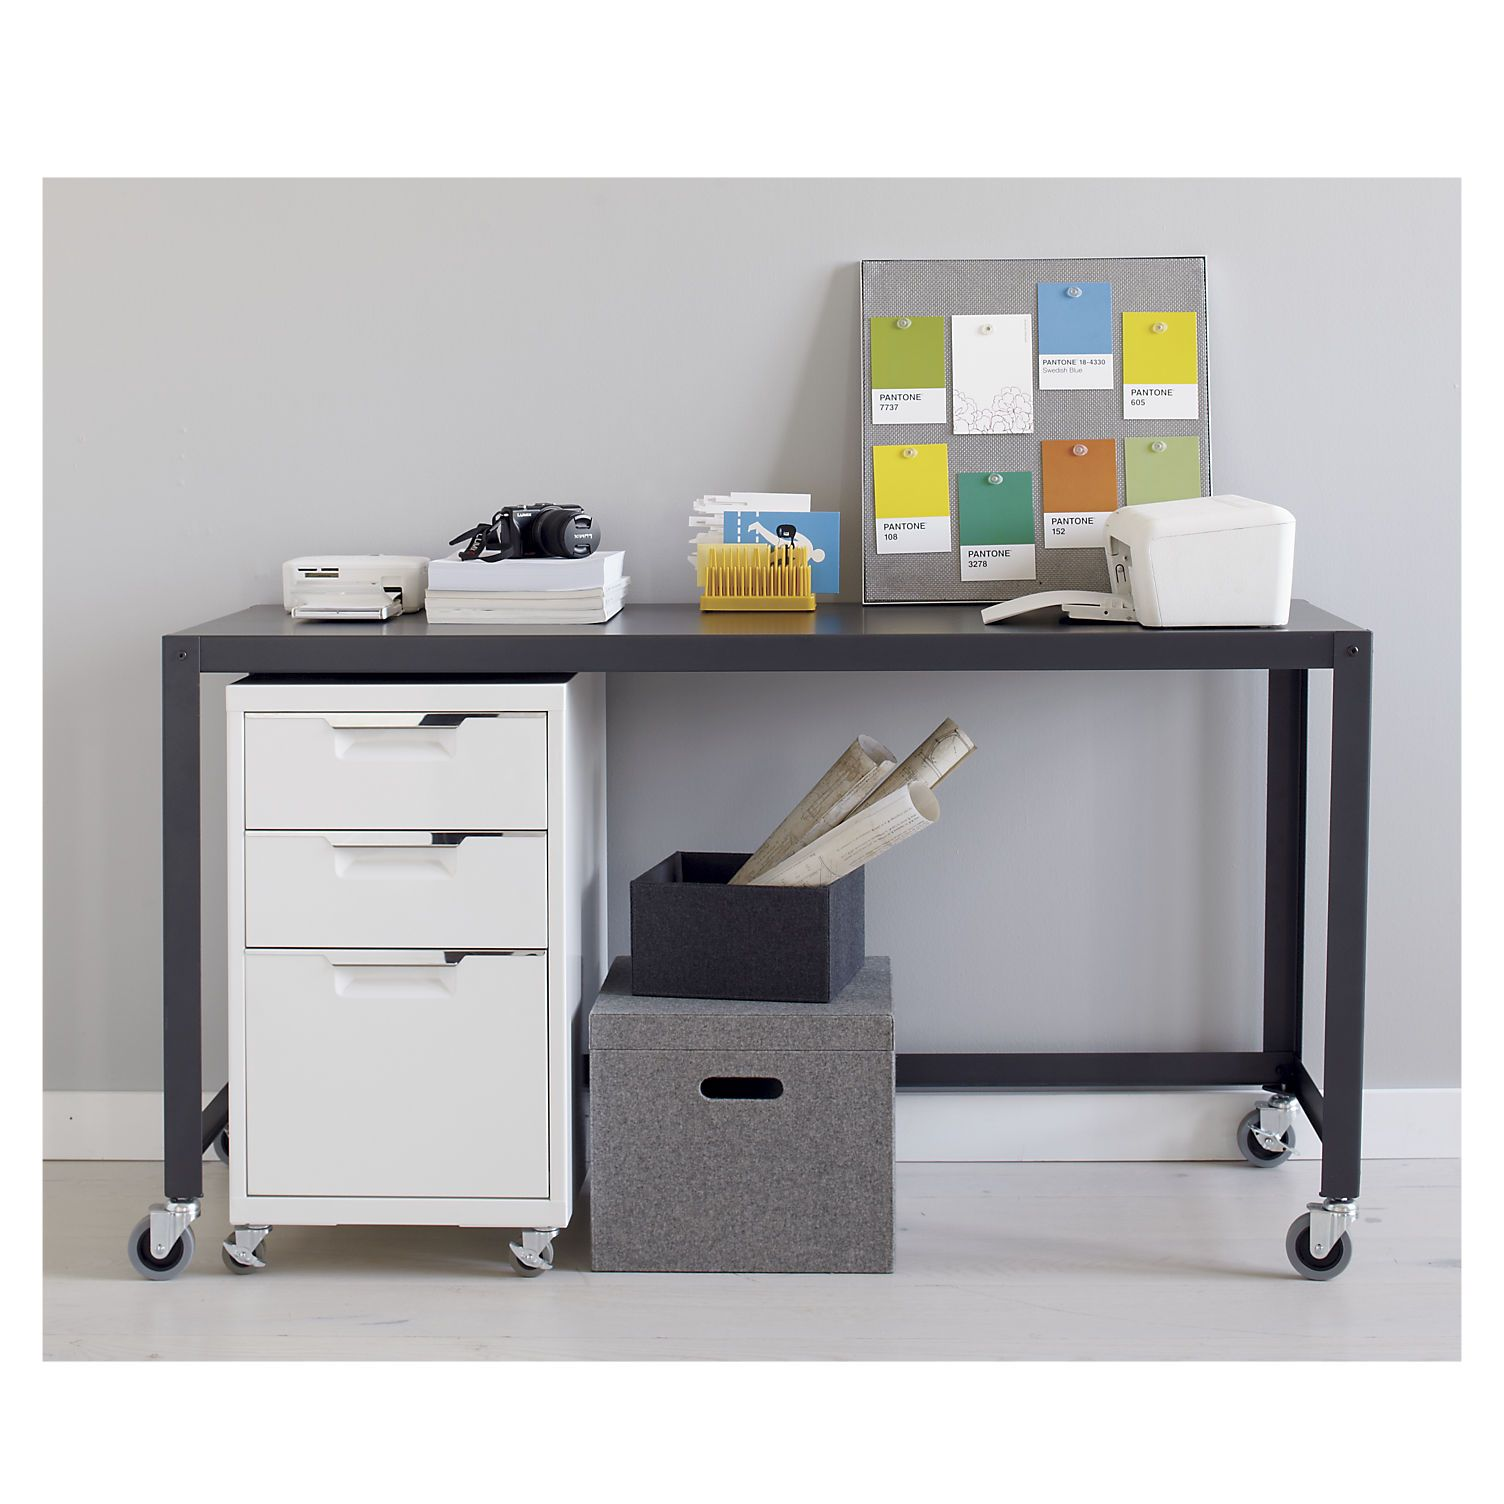 cb2 office. Go-cart Carbon Rolling Console Table Cb2 Office